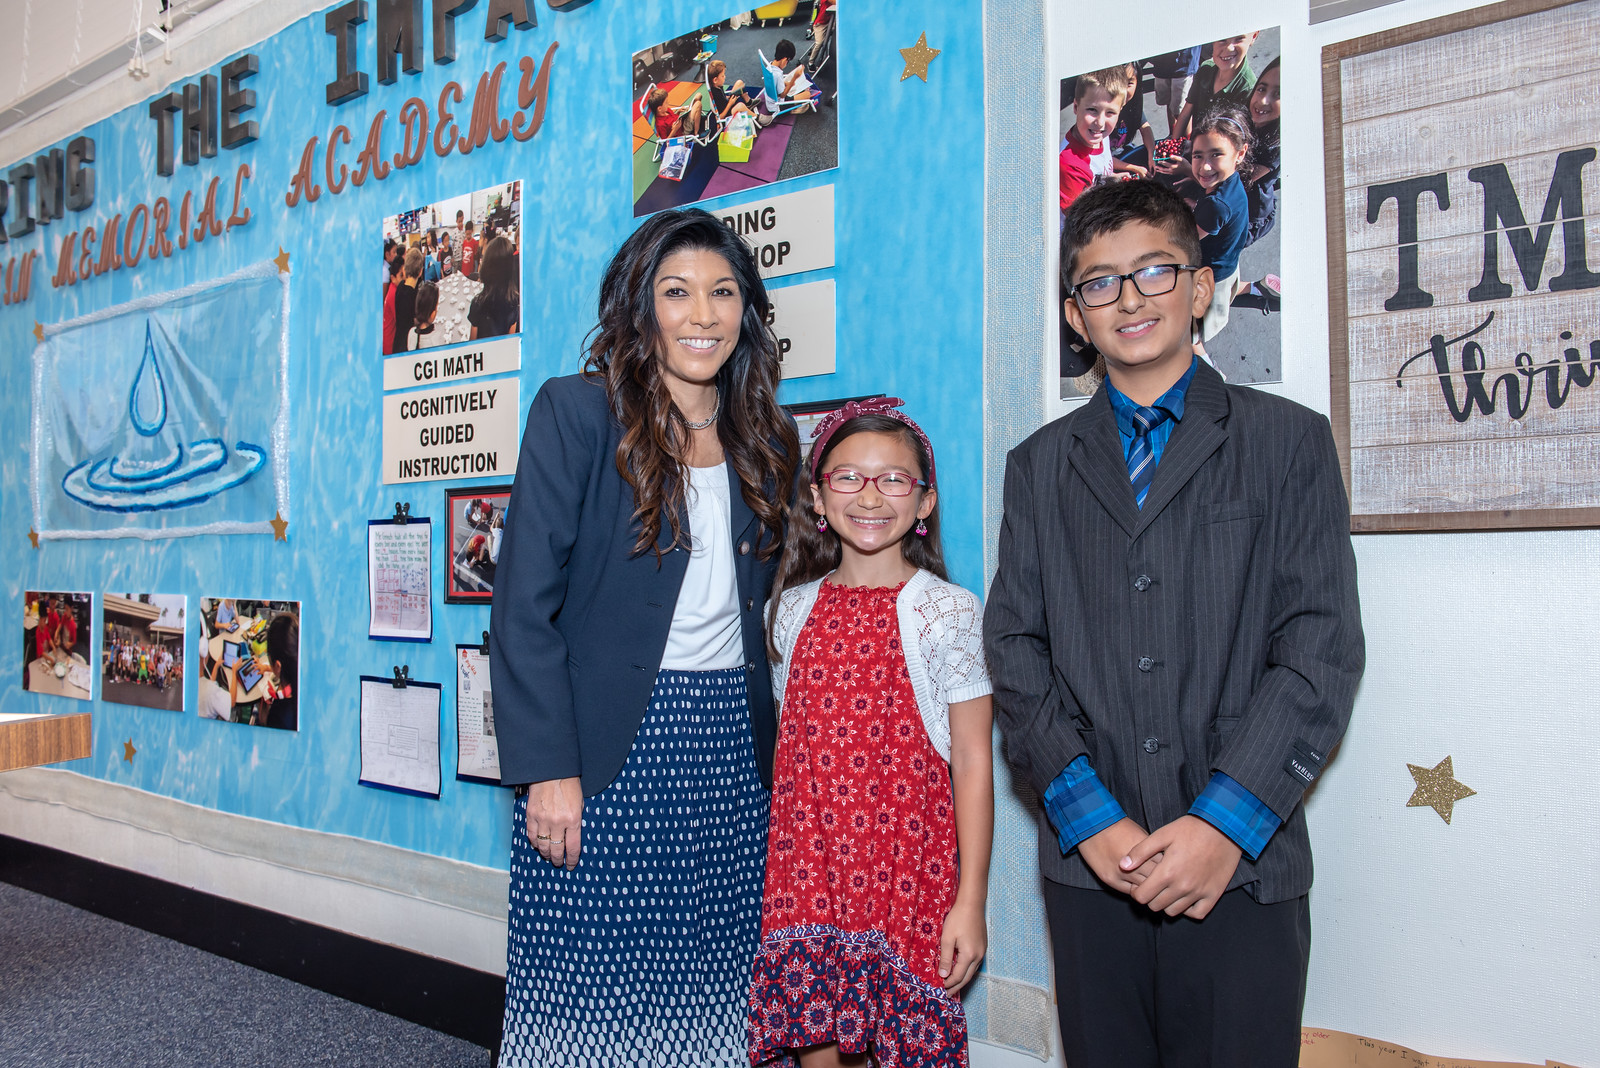 TMA's Board Room Display with the principal and two students